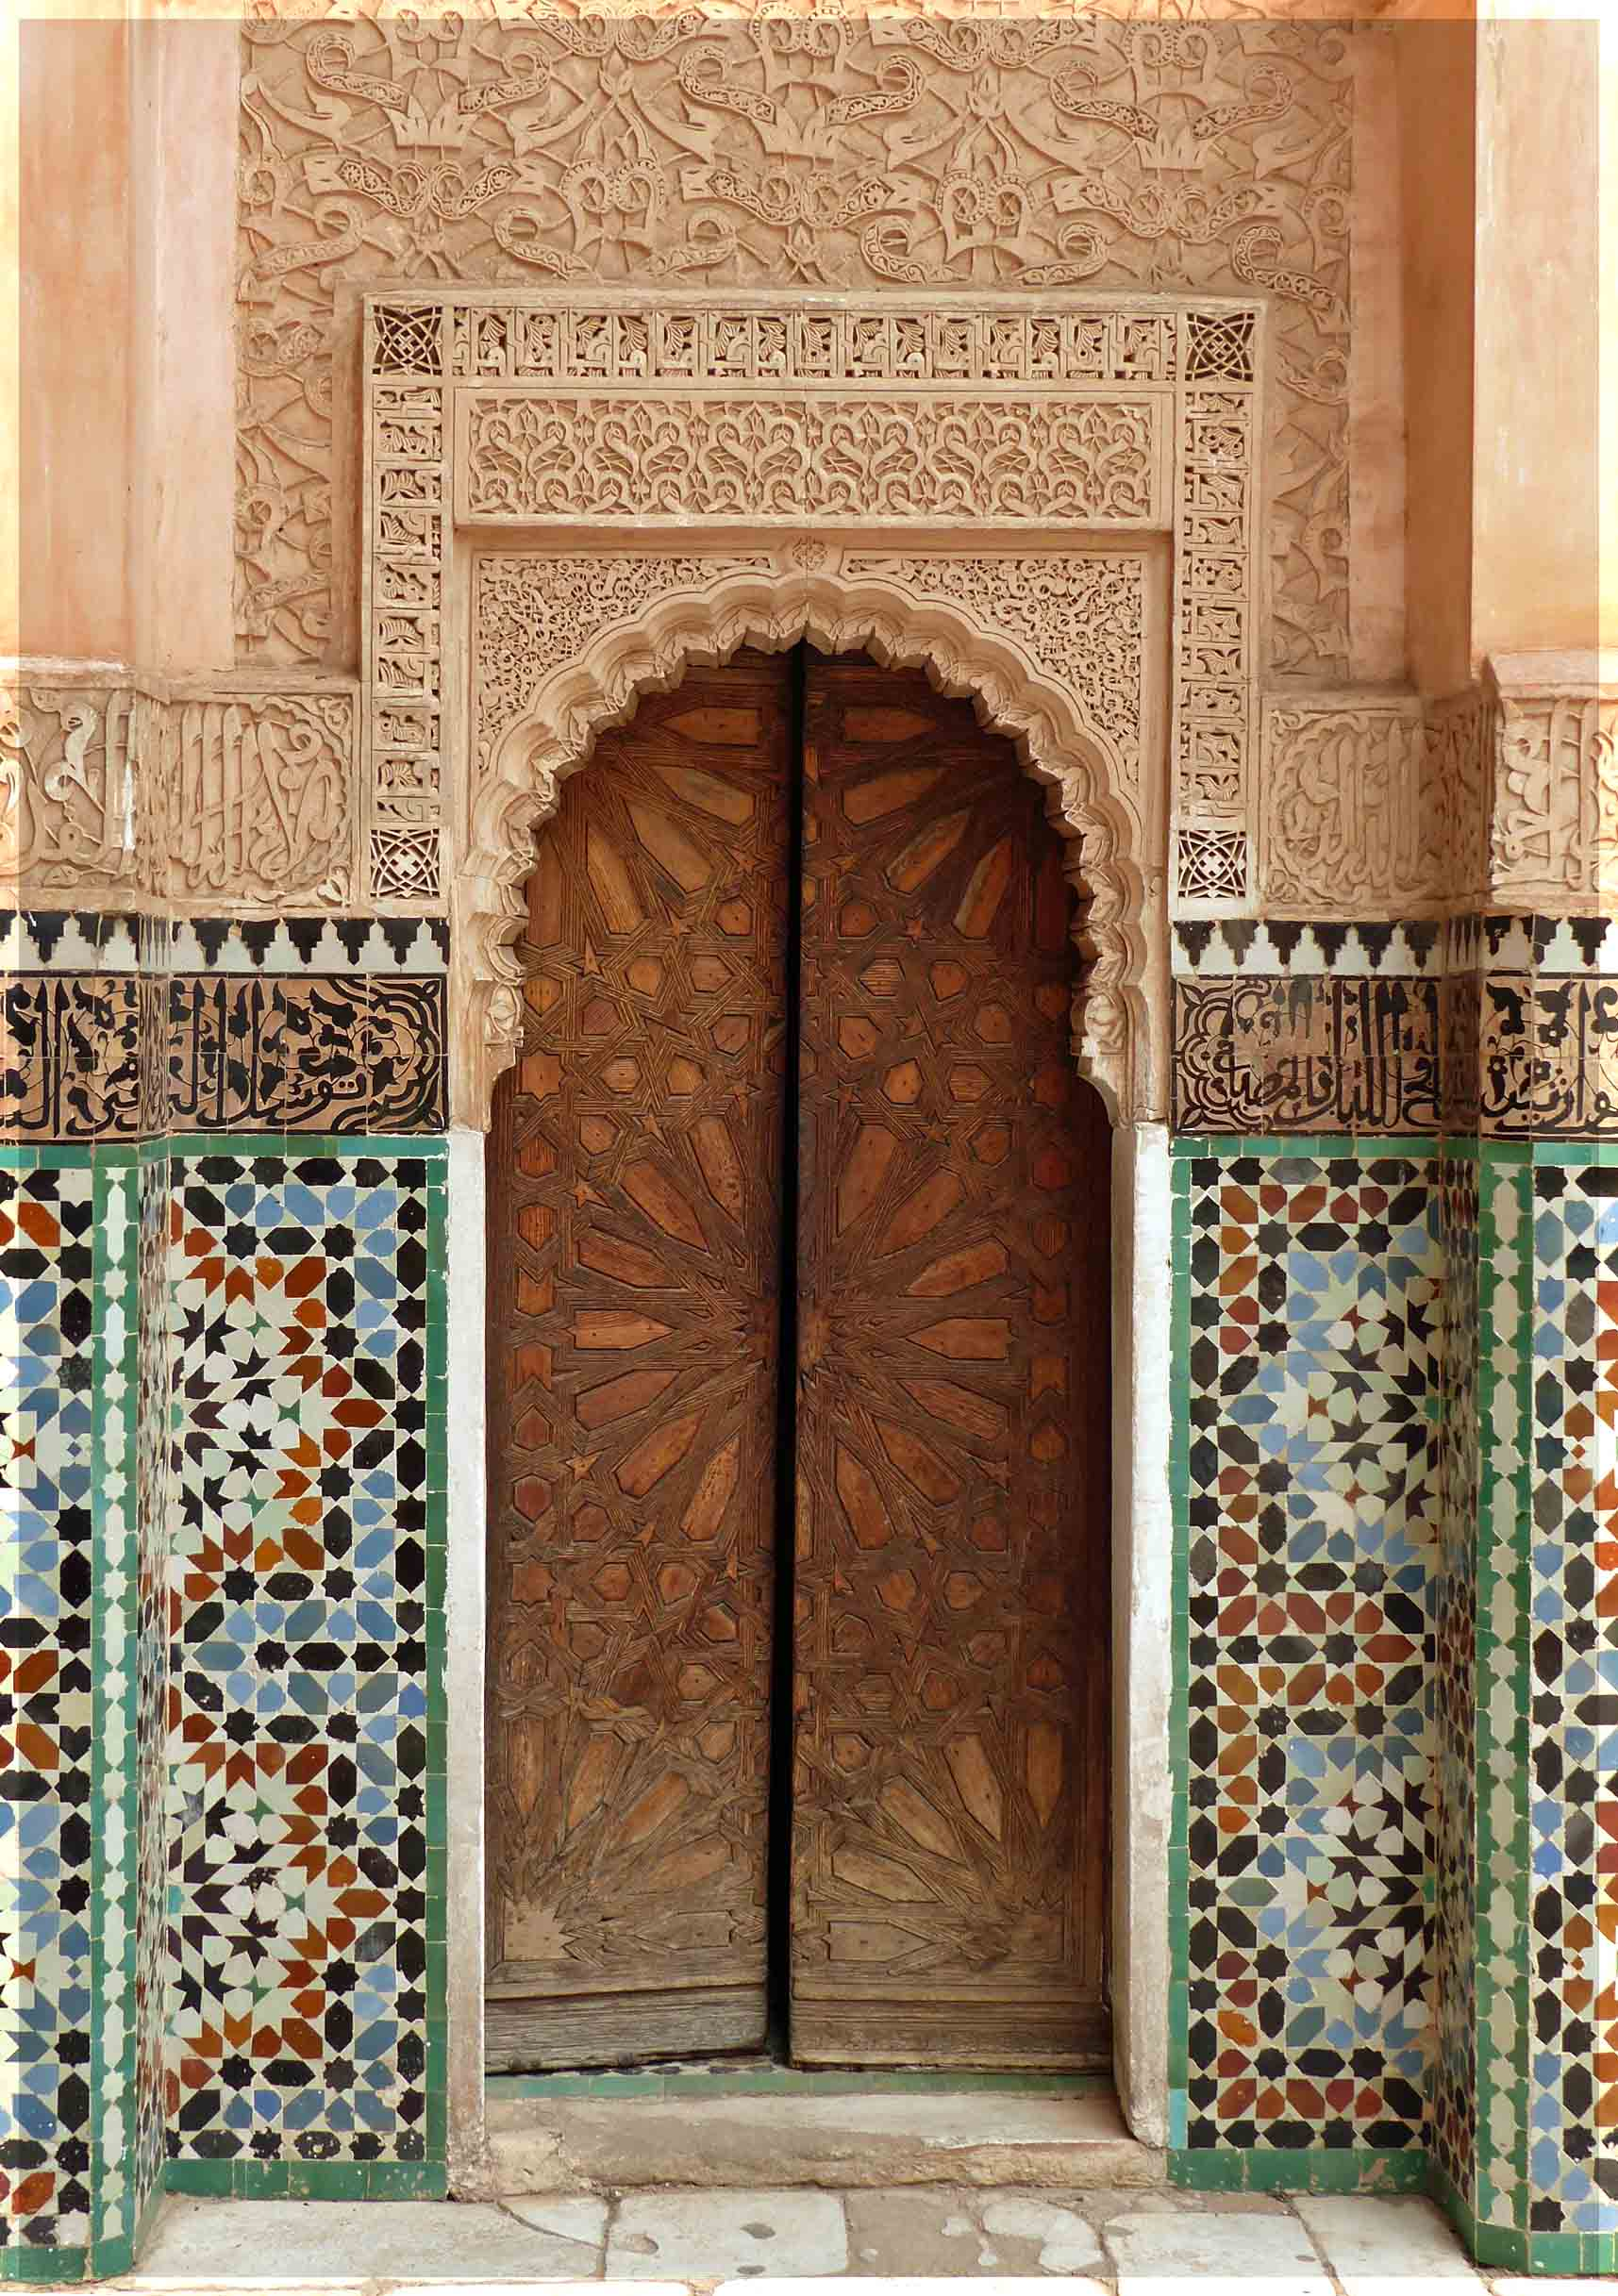 Wall with wooden door, decorative coloured tiles and stucco work